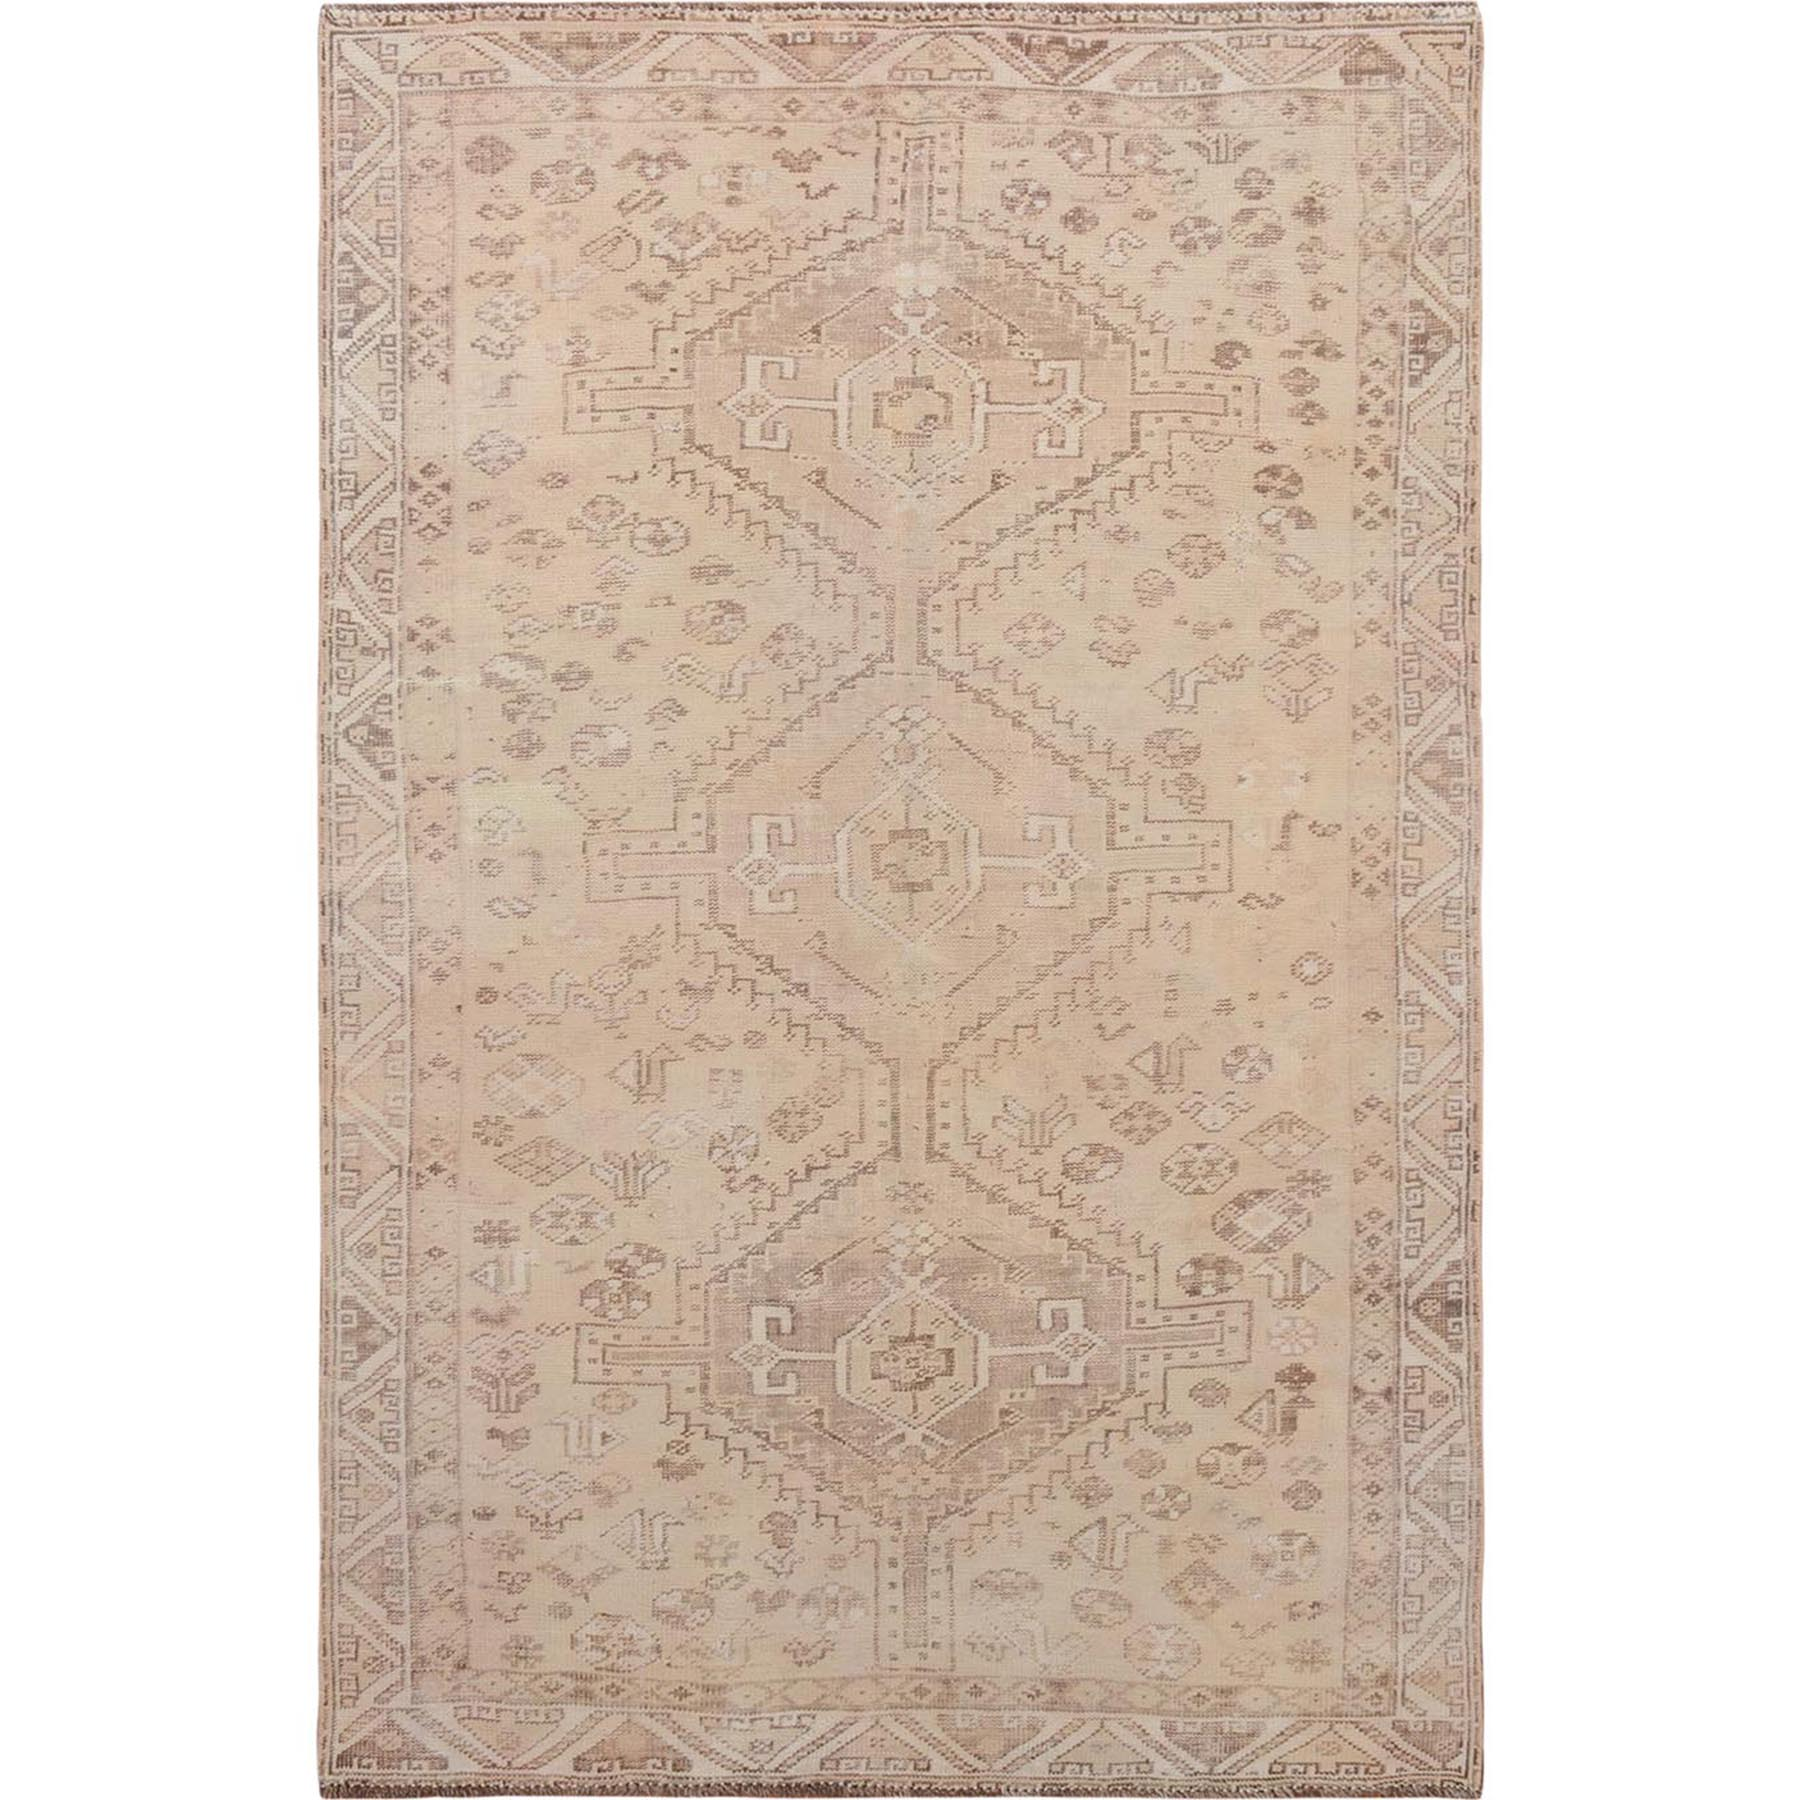 "4'10""x7'4"" Earth Tones Vintage and Worn Down Persian Shiraz Clean Pure Wool Hand Woven Oriental Rug"